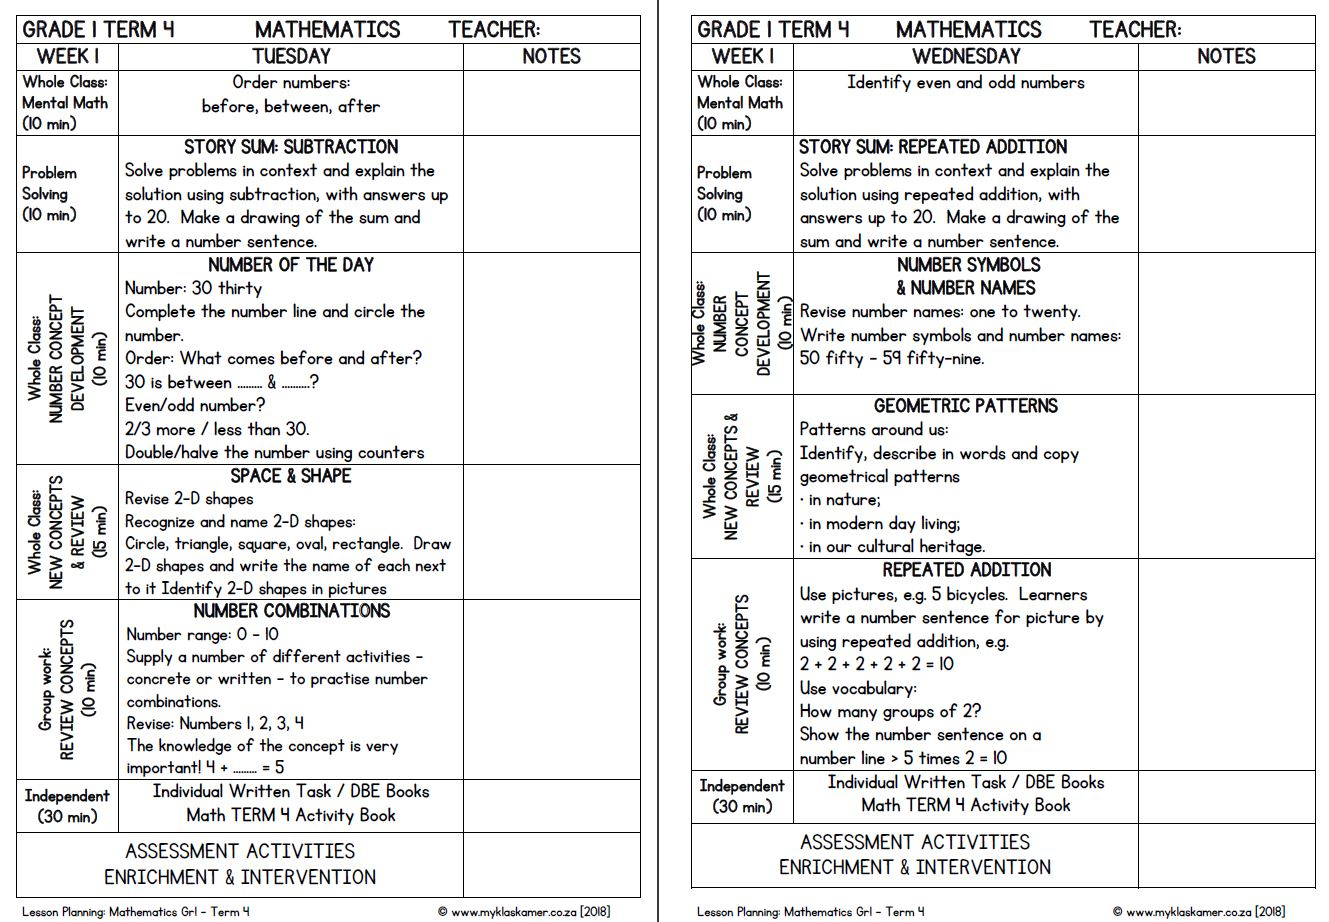 Lesson Planning Mathematics Grade 1 Term 4